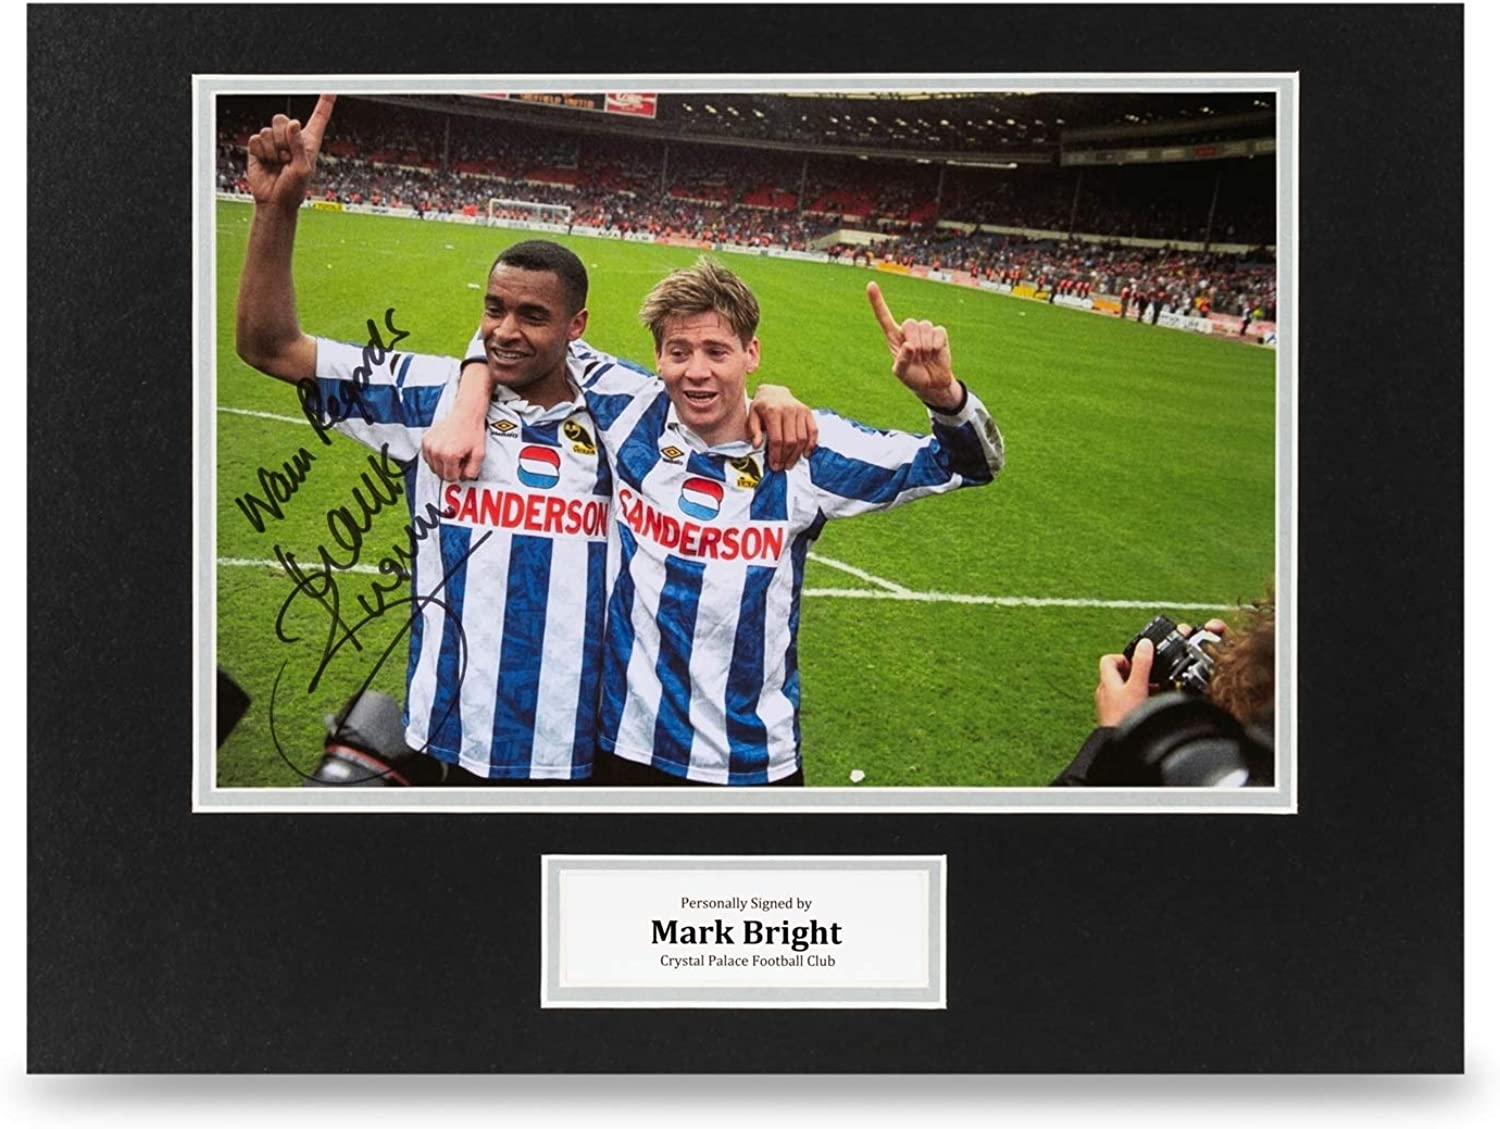 Mark Bright Signed 16x12 Photo Display Sheffield Wednesday Autograph Memorabilia